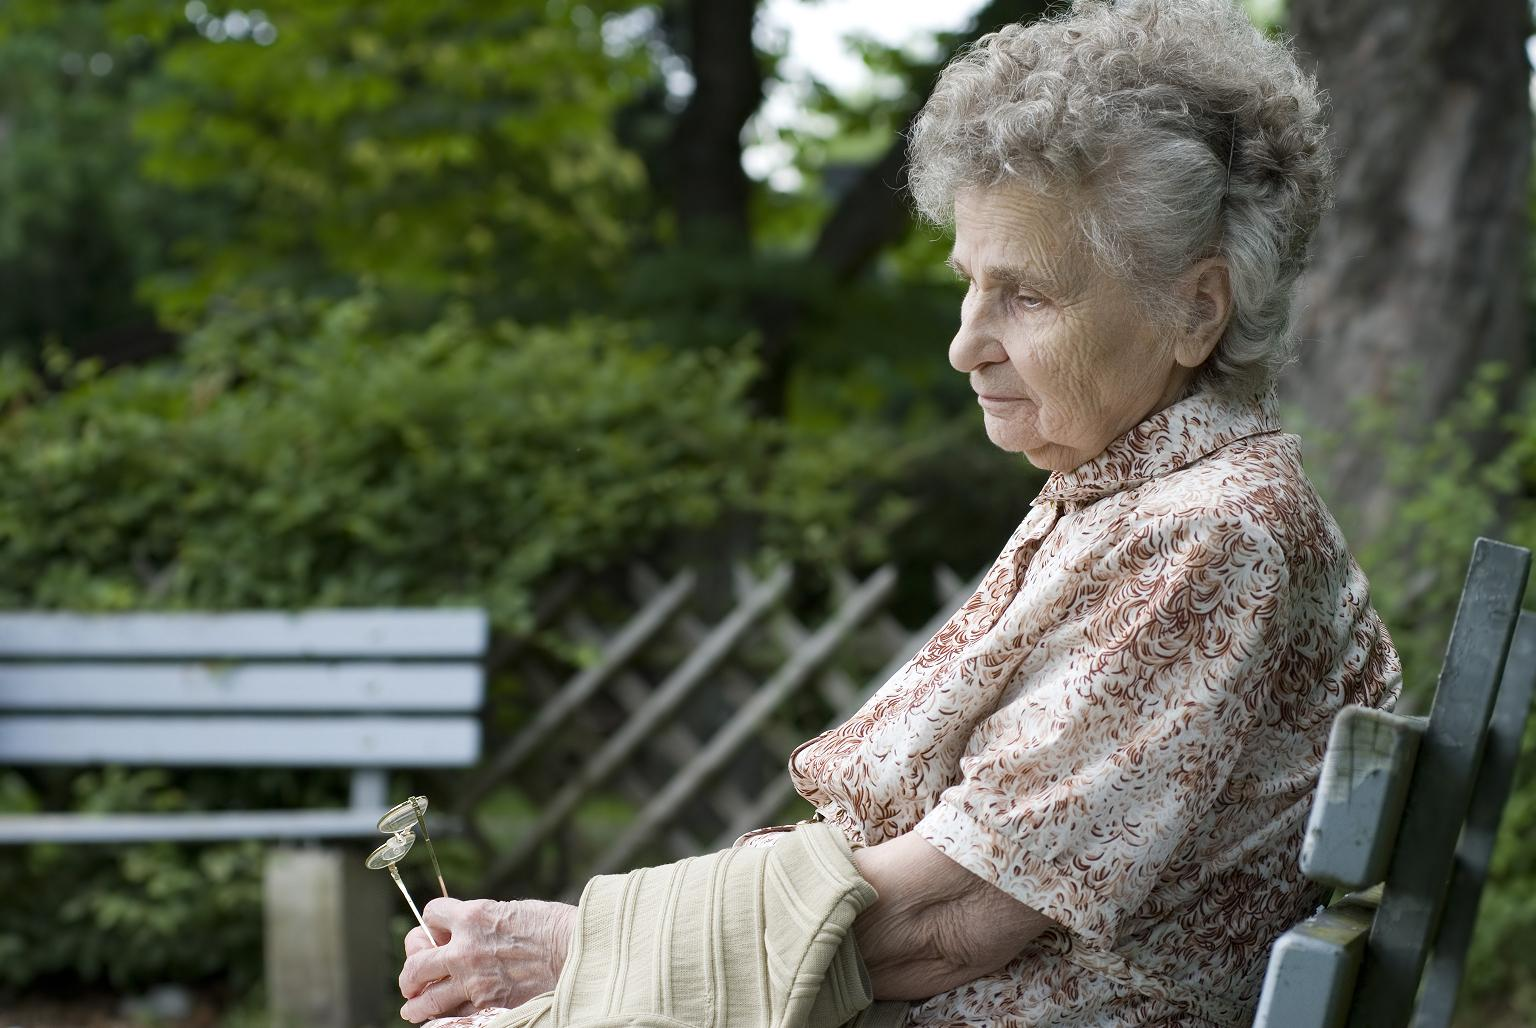 Elder Abuse, elder abuse and neglect